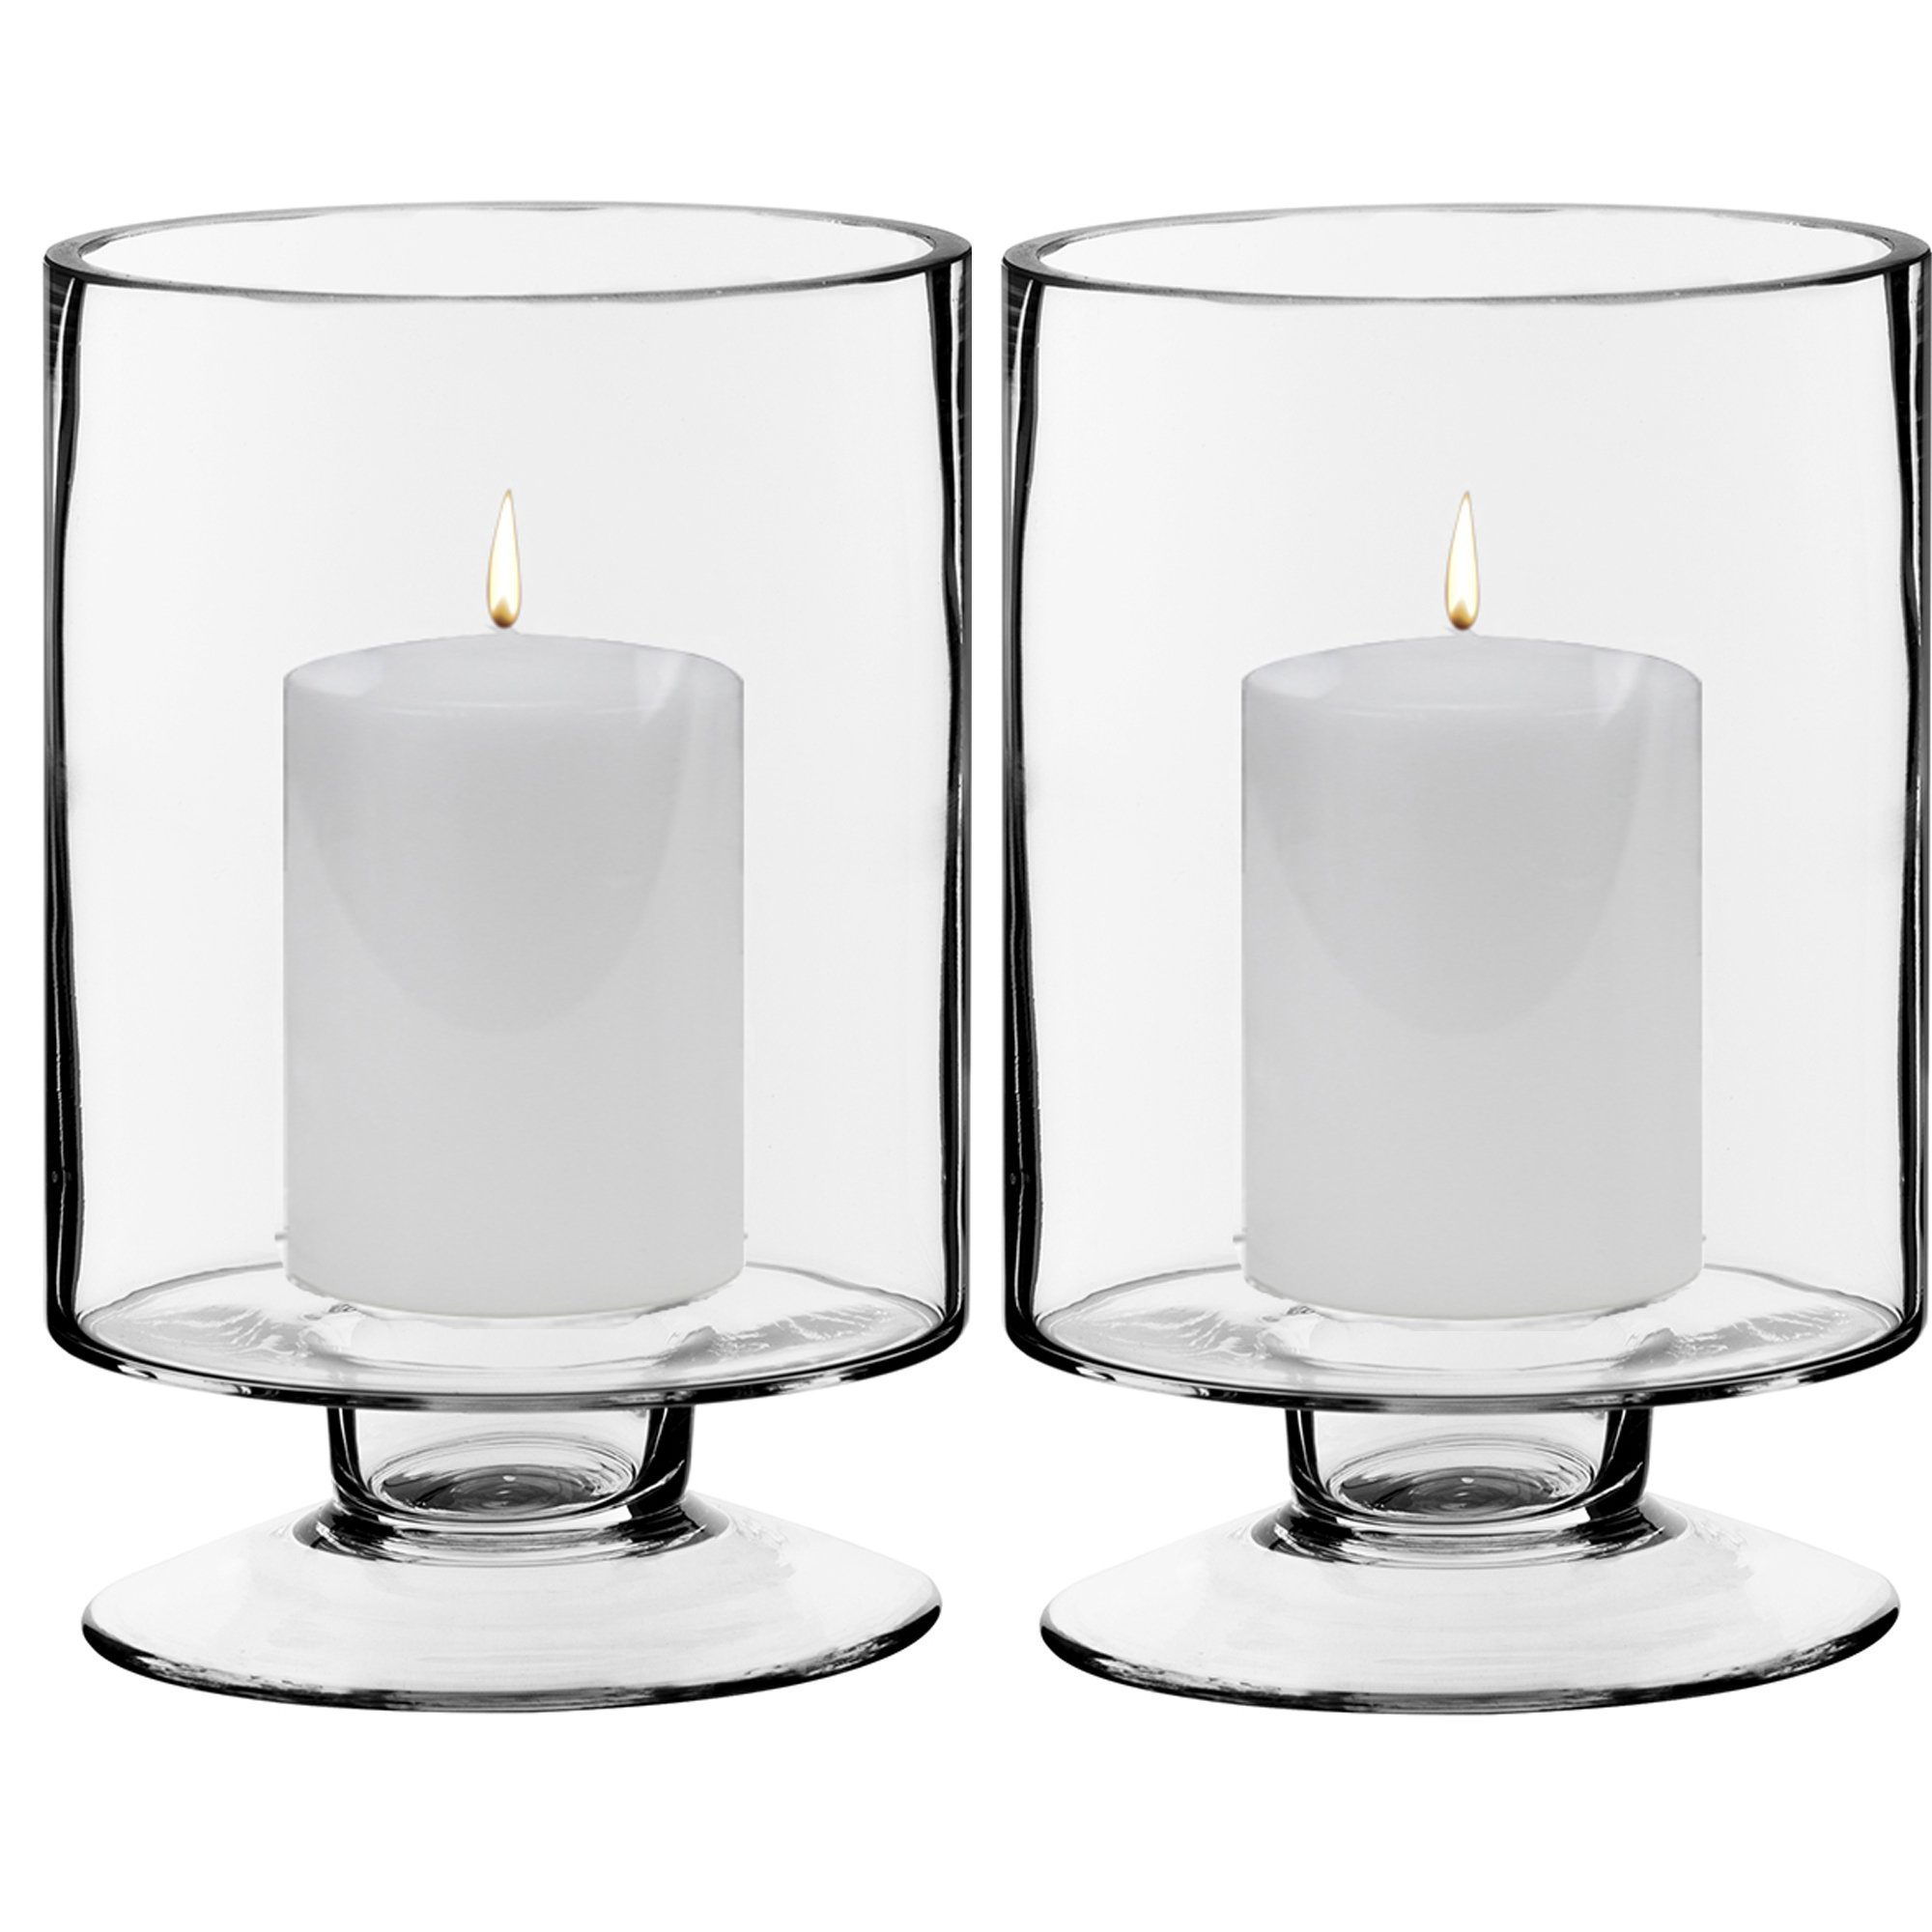 CYS EXCEL Clear Glass Pillar Candle Holder - Taper Candle Stand - Dual Use for Pillar or Taper Candlesticks Pack of 2 PCS (D3.7 H6)